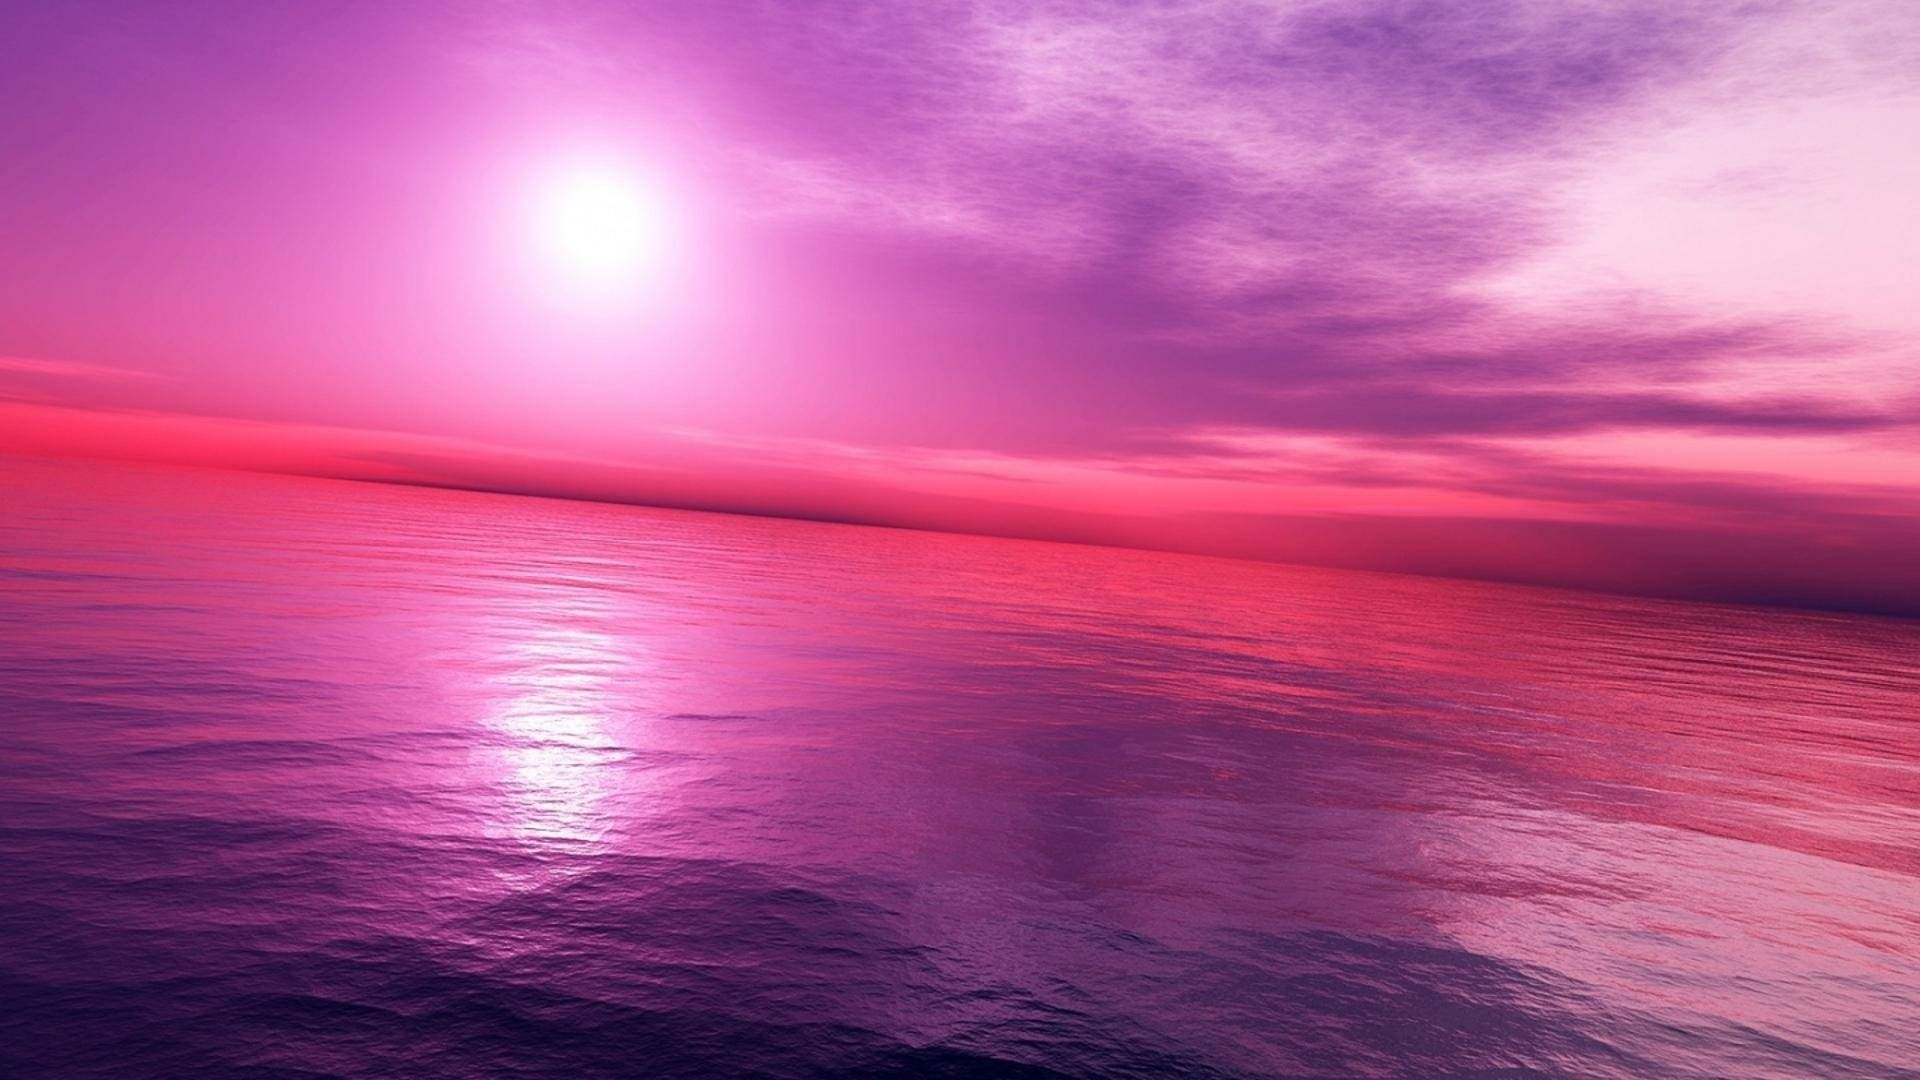 190693 Pink Sky And Ocean Wallpaper Hd Image Backgrounds